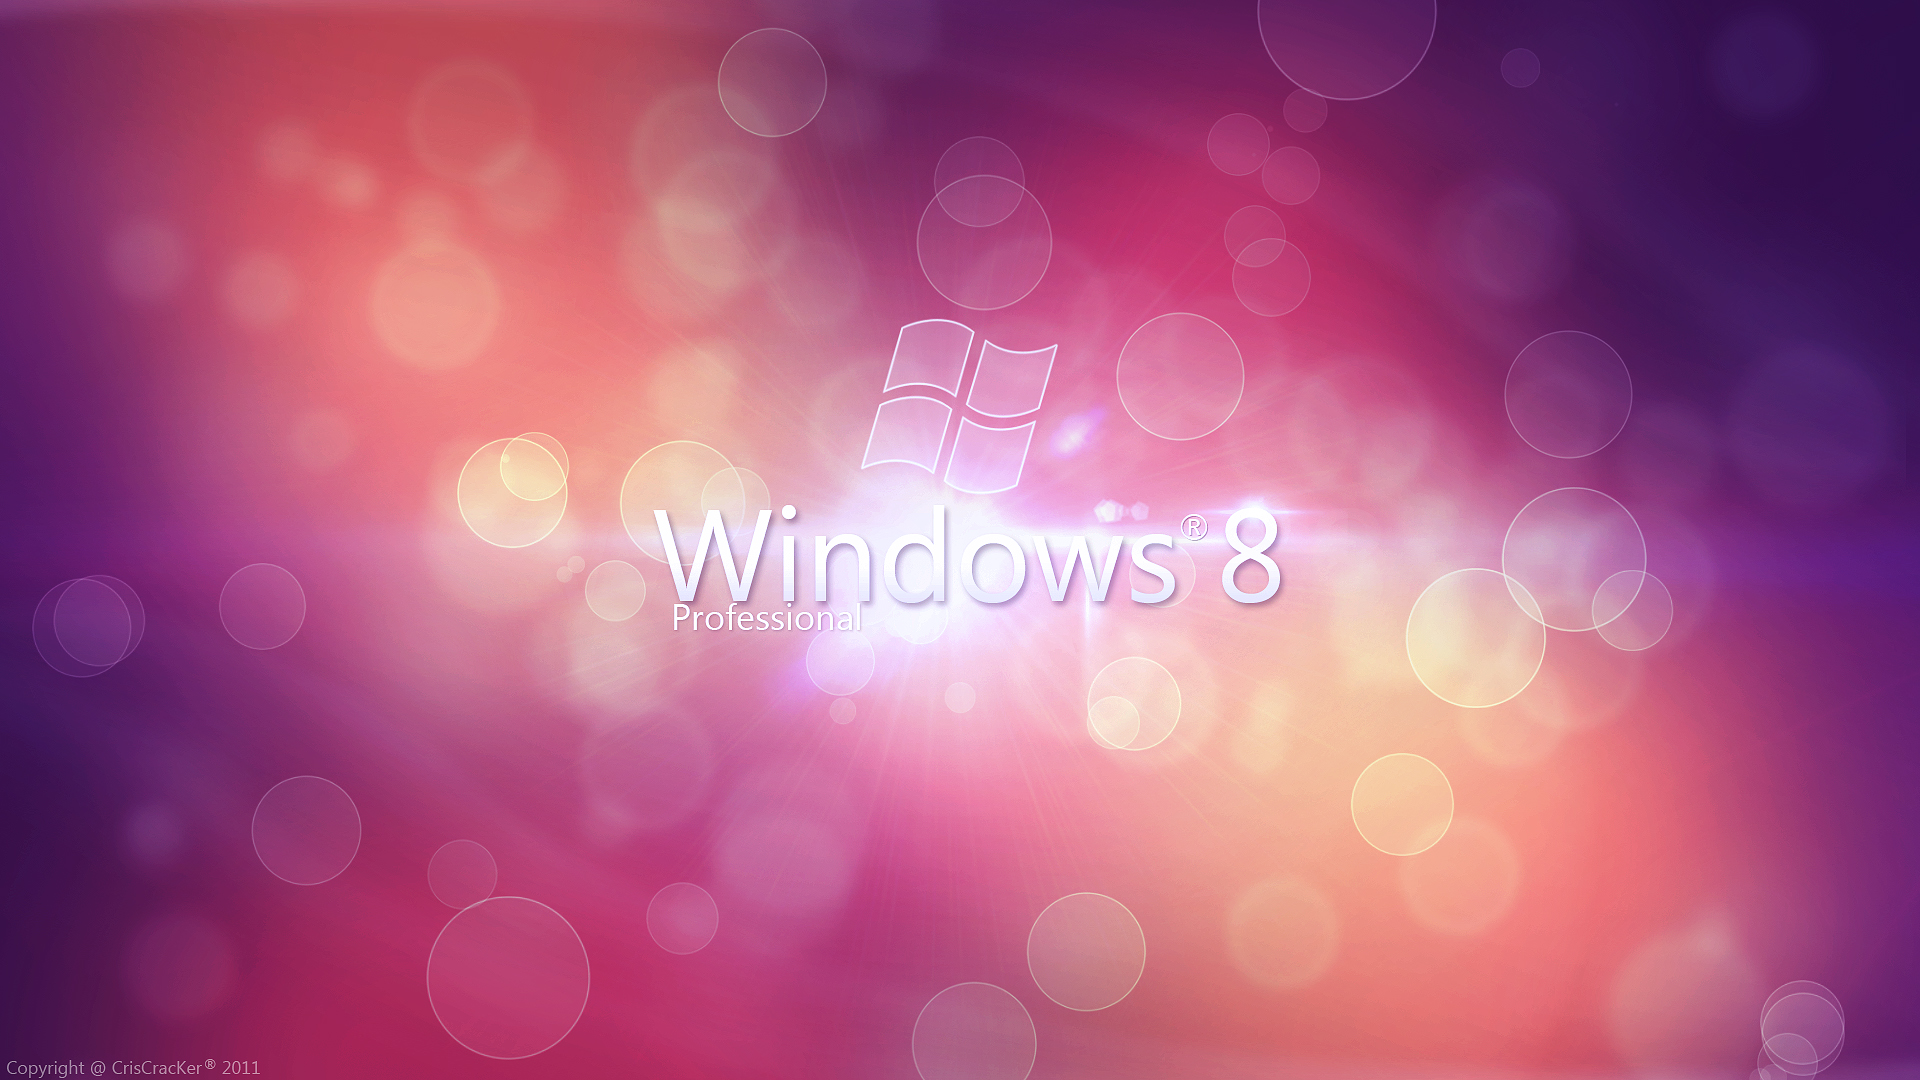 Windows 8 Wallpaper by criscracker